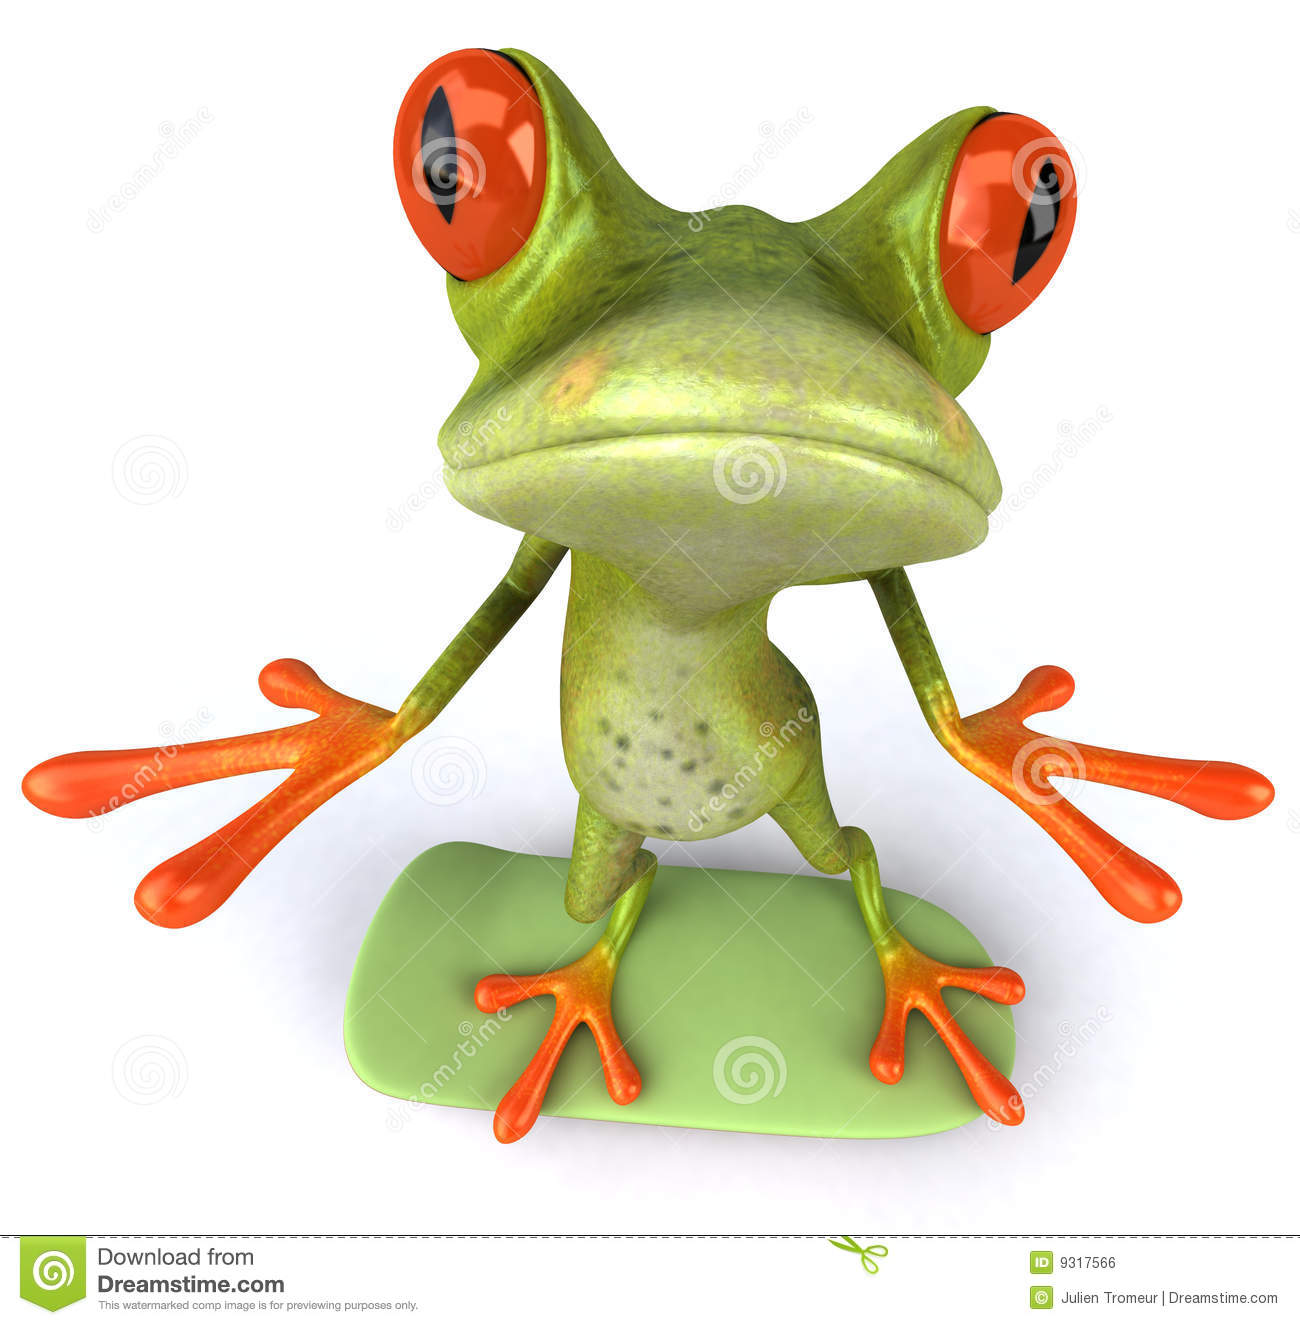 American green tree frog - Wikipedia